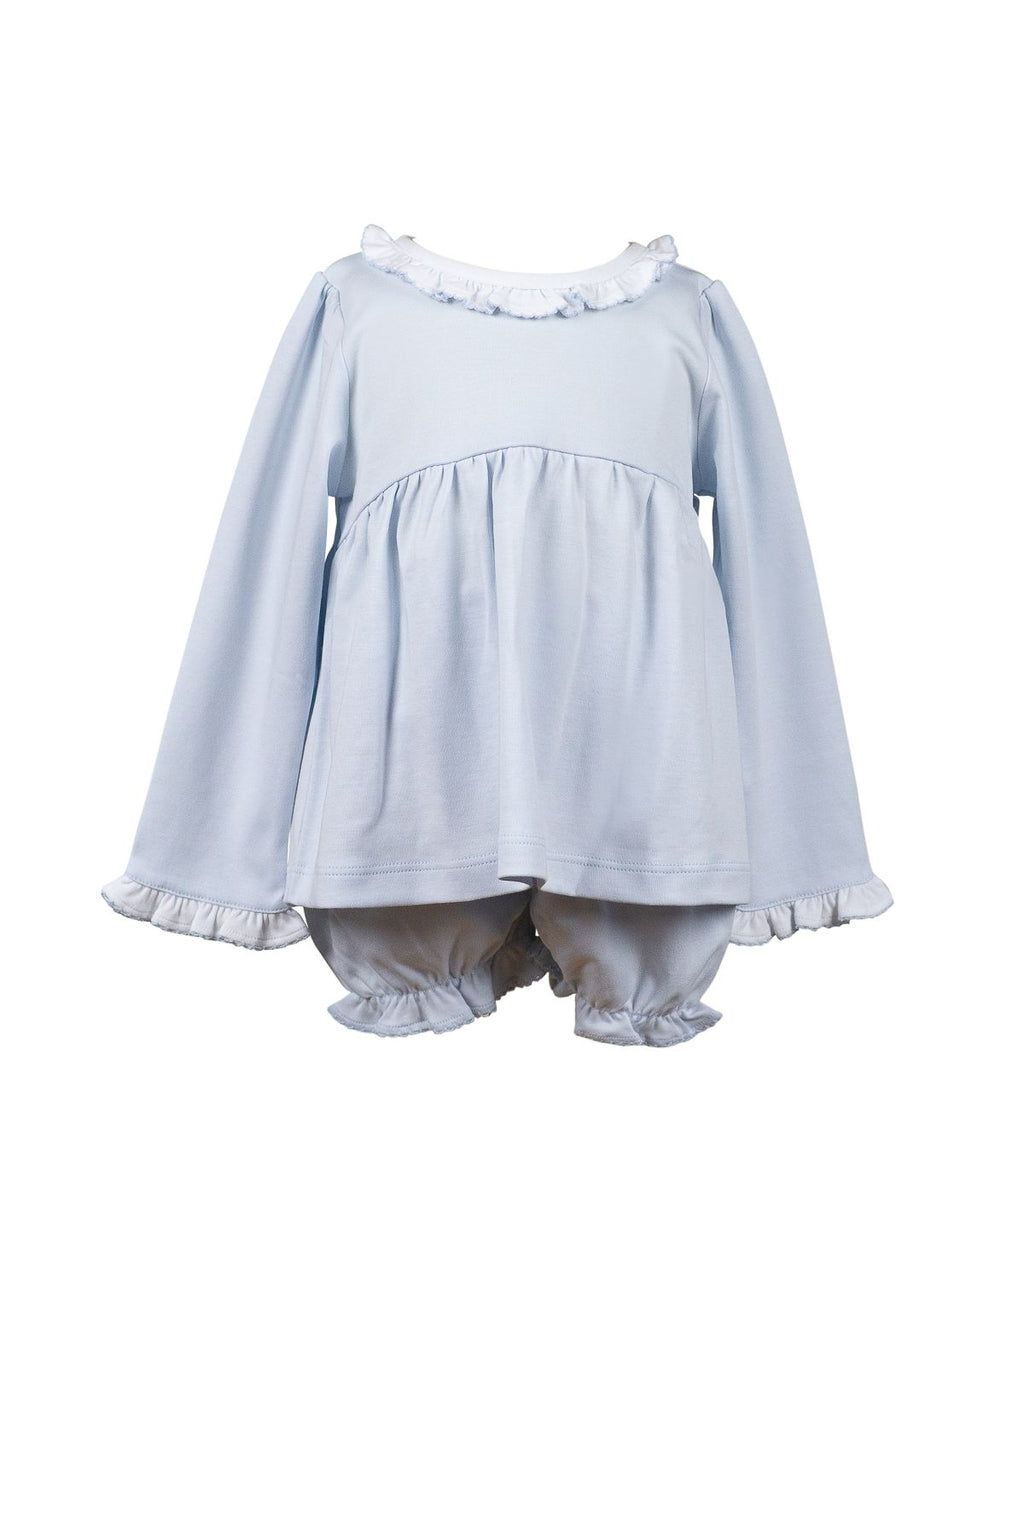 The Proper Peony Soft Blue Ruffle Bloomer Set